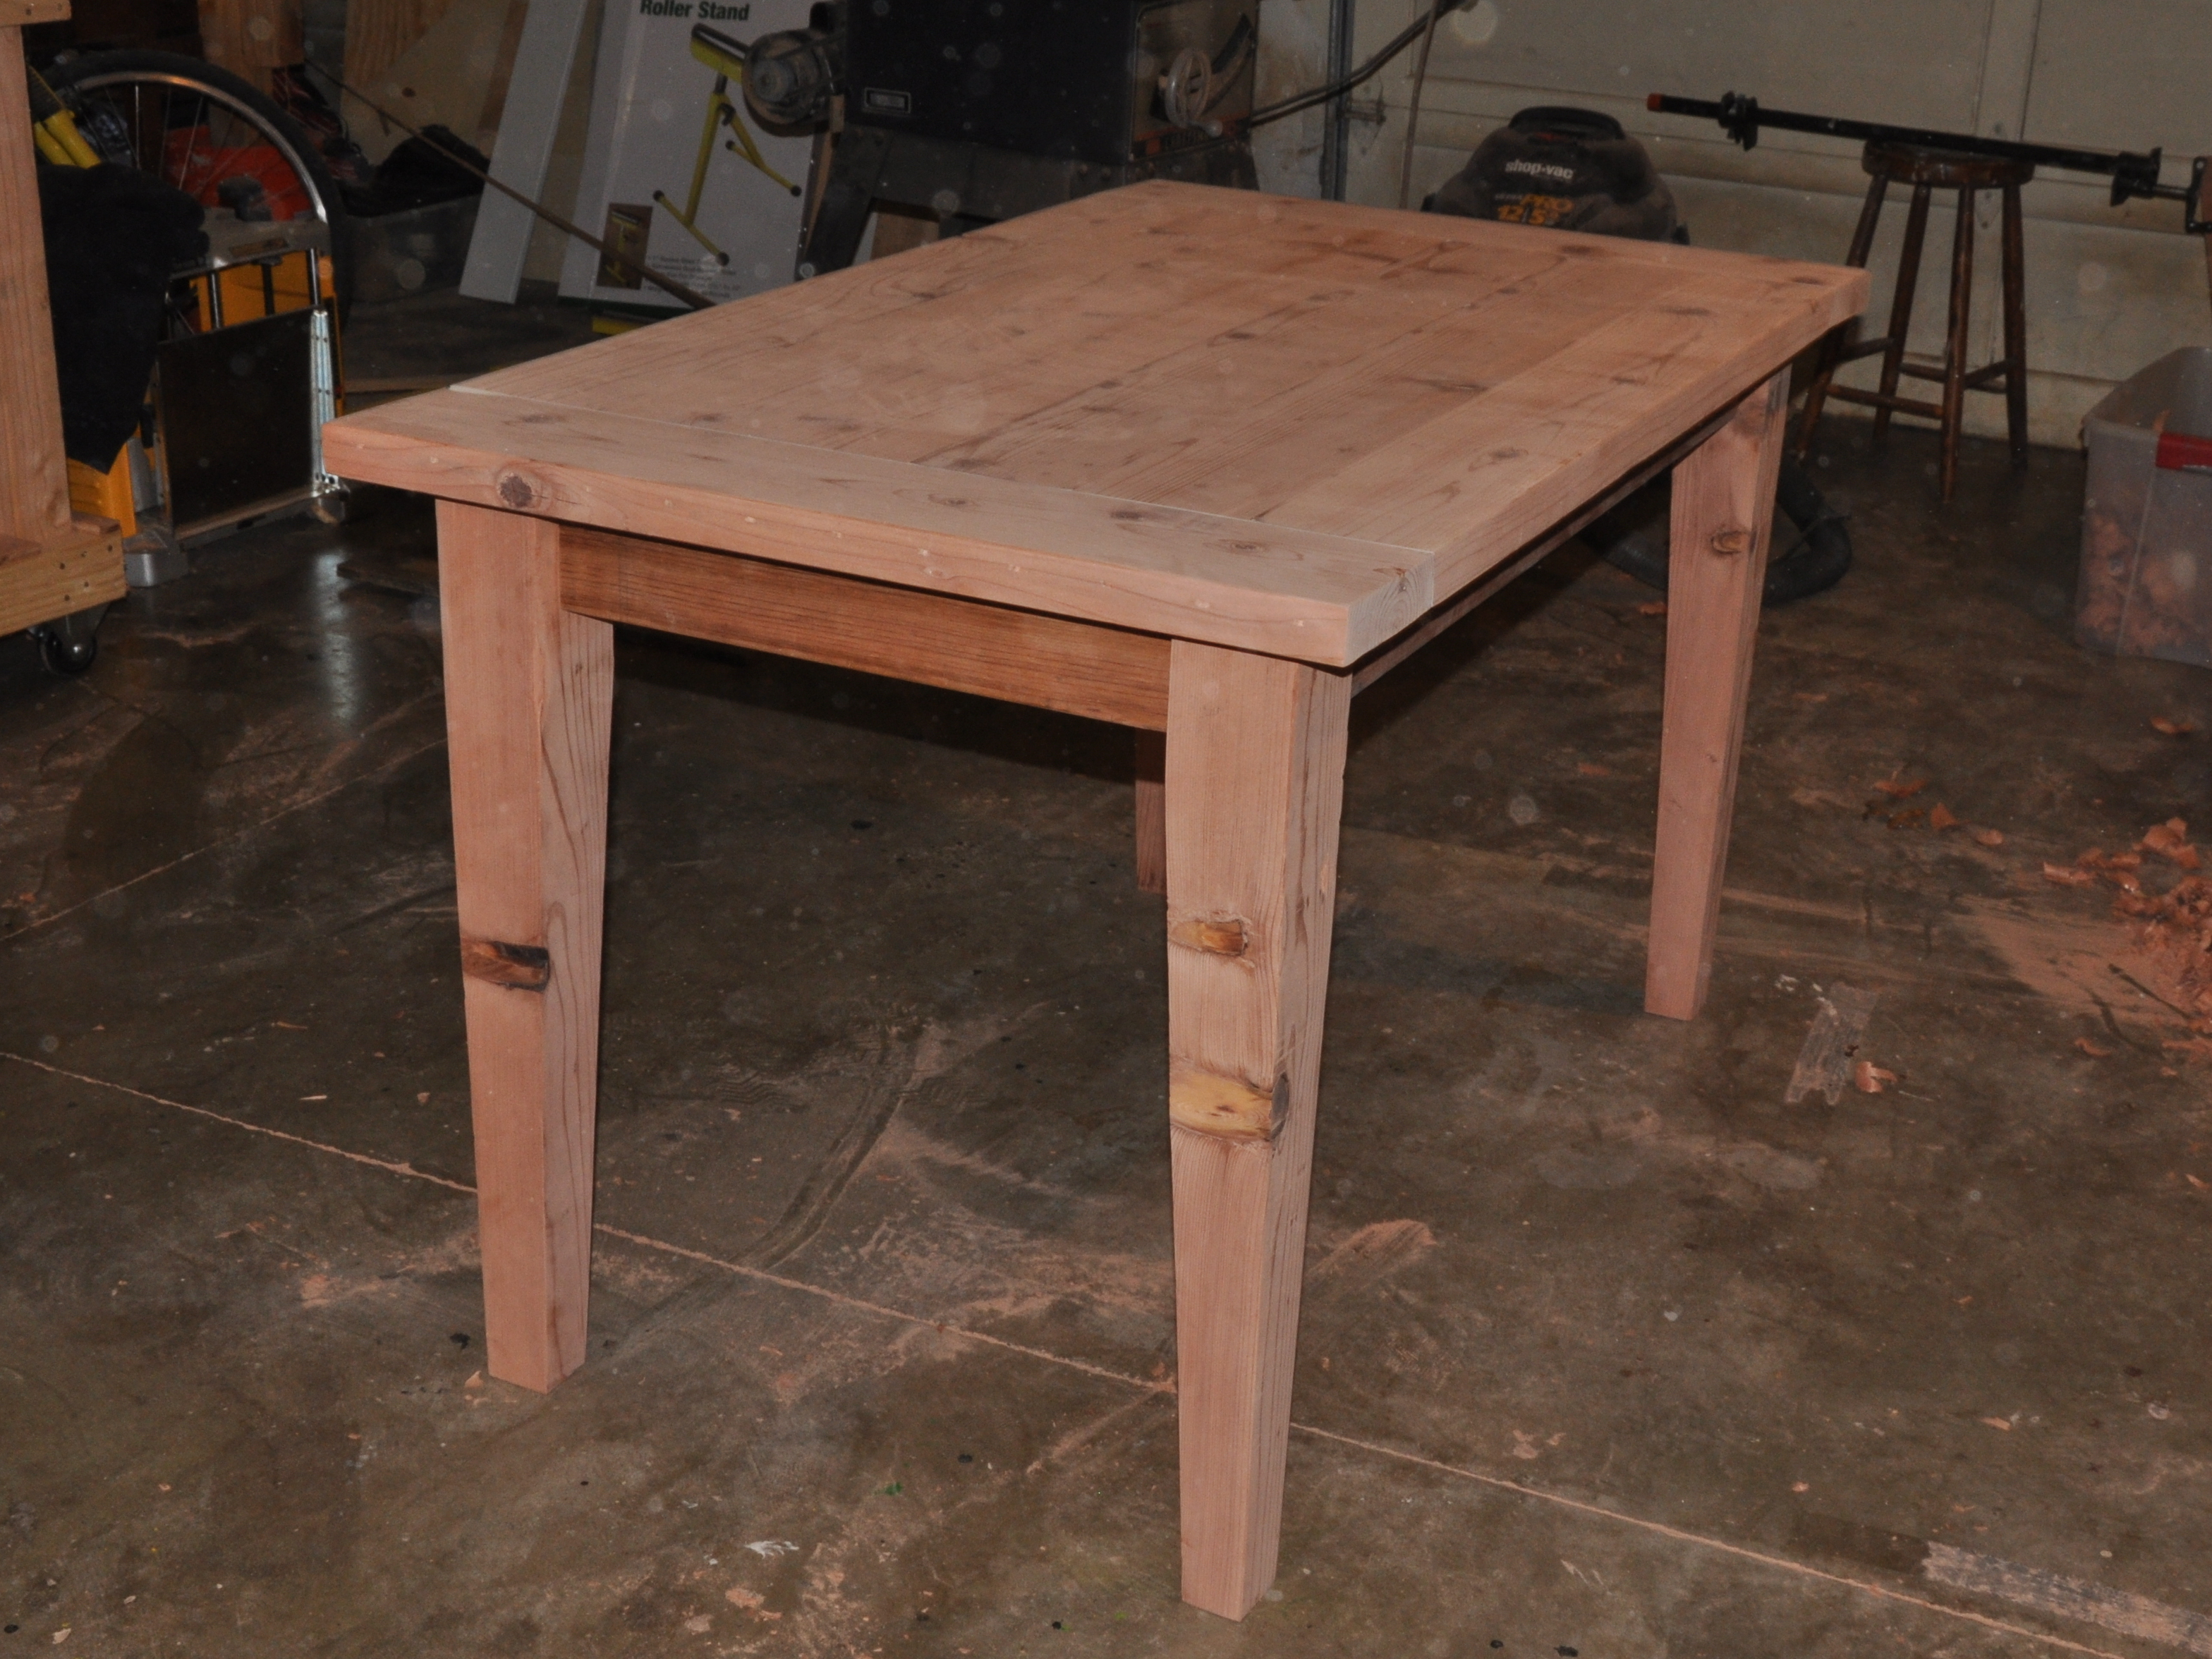 Wooden Table Top Ideas Make A Wooden Table That Is Easily Disassembled Make